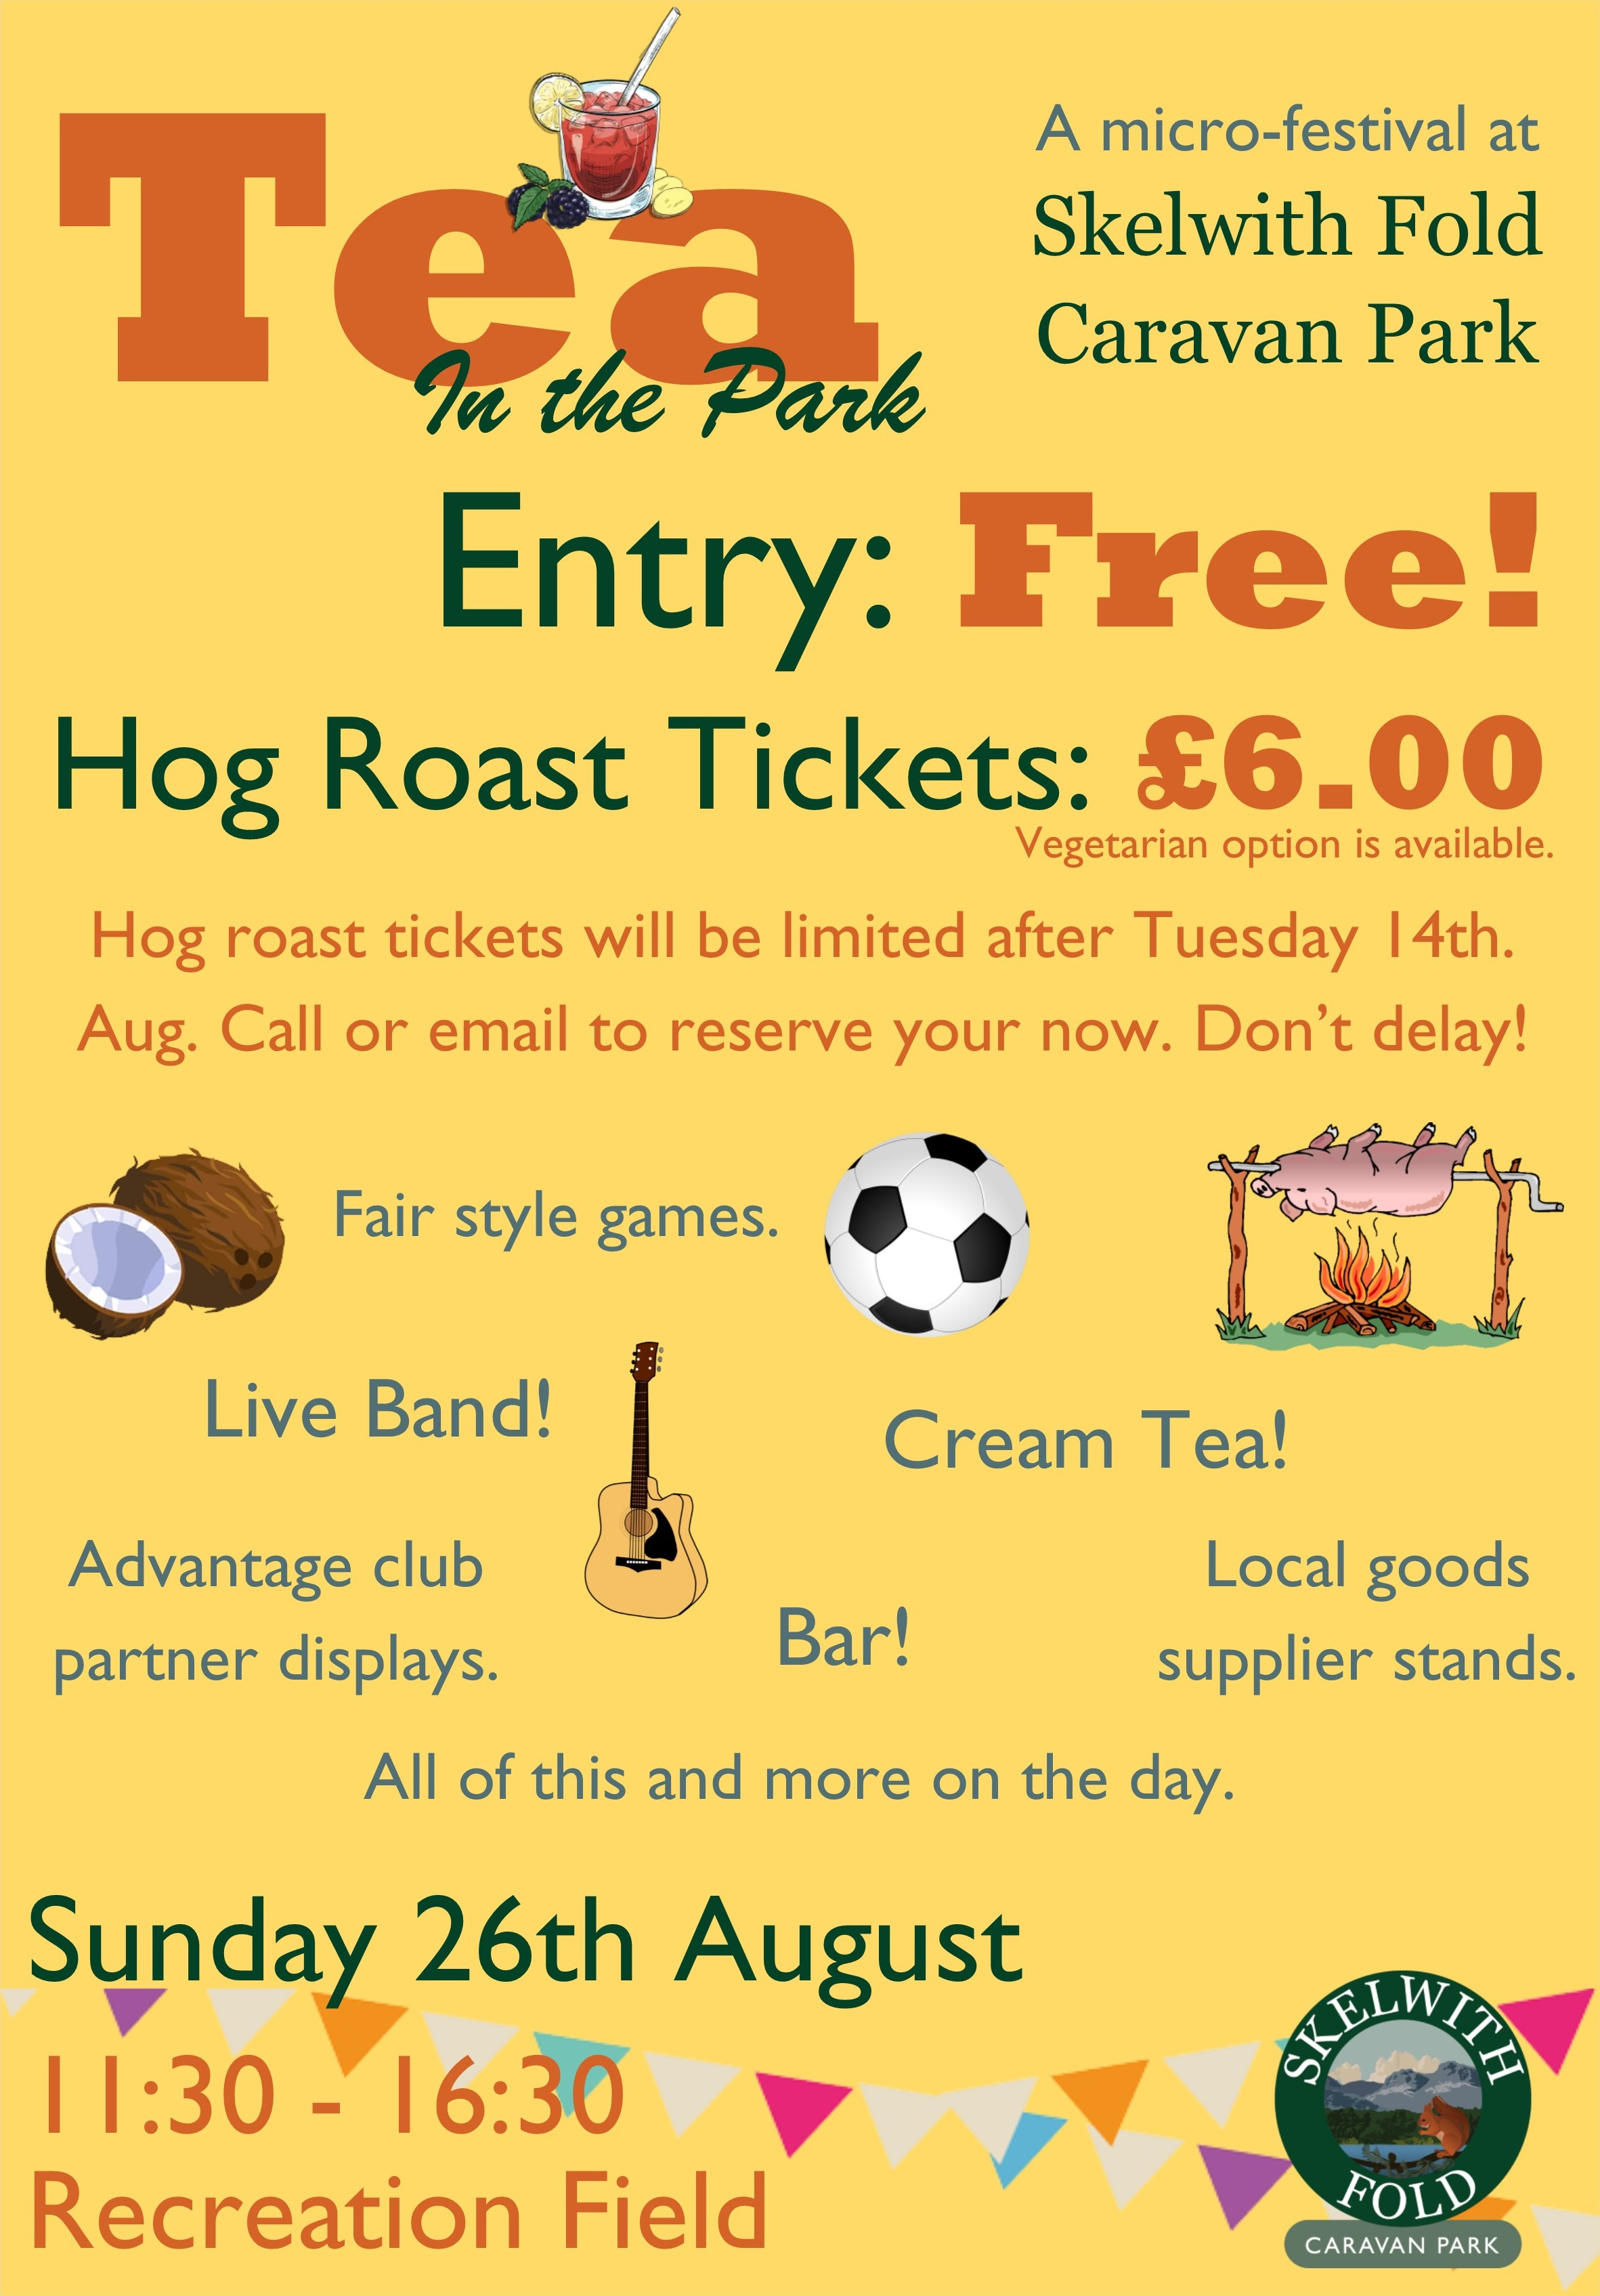 The Skelwith Fold Caravan Park email poster for their Tea in the Park festival, 2018